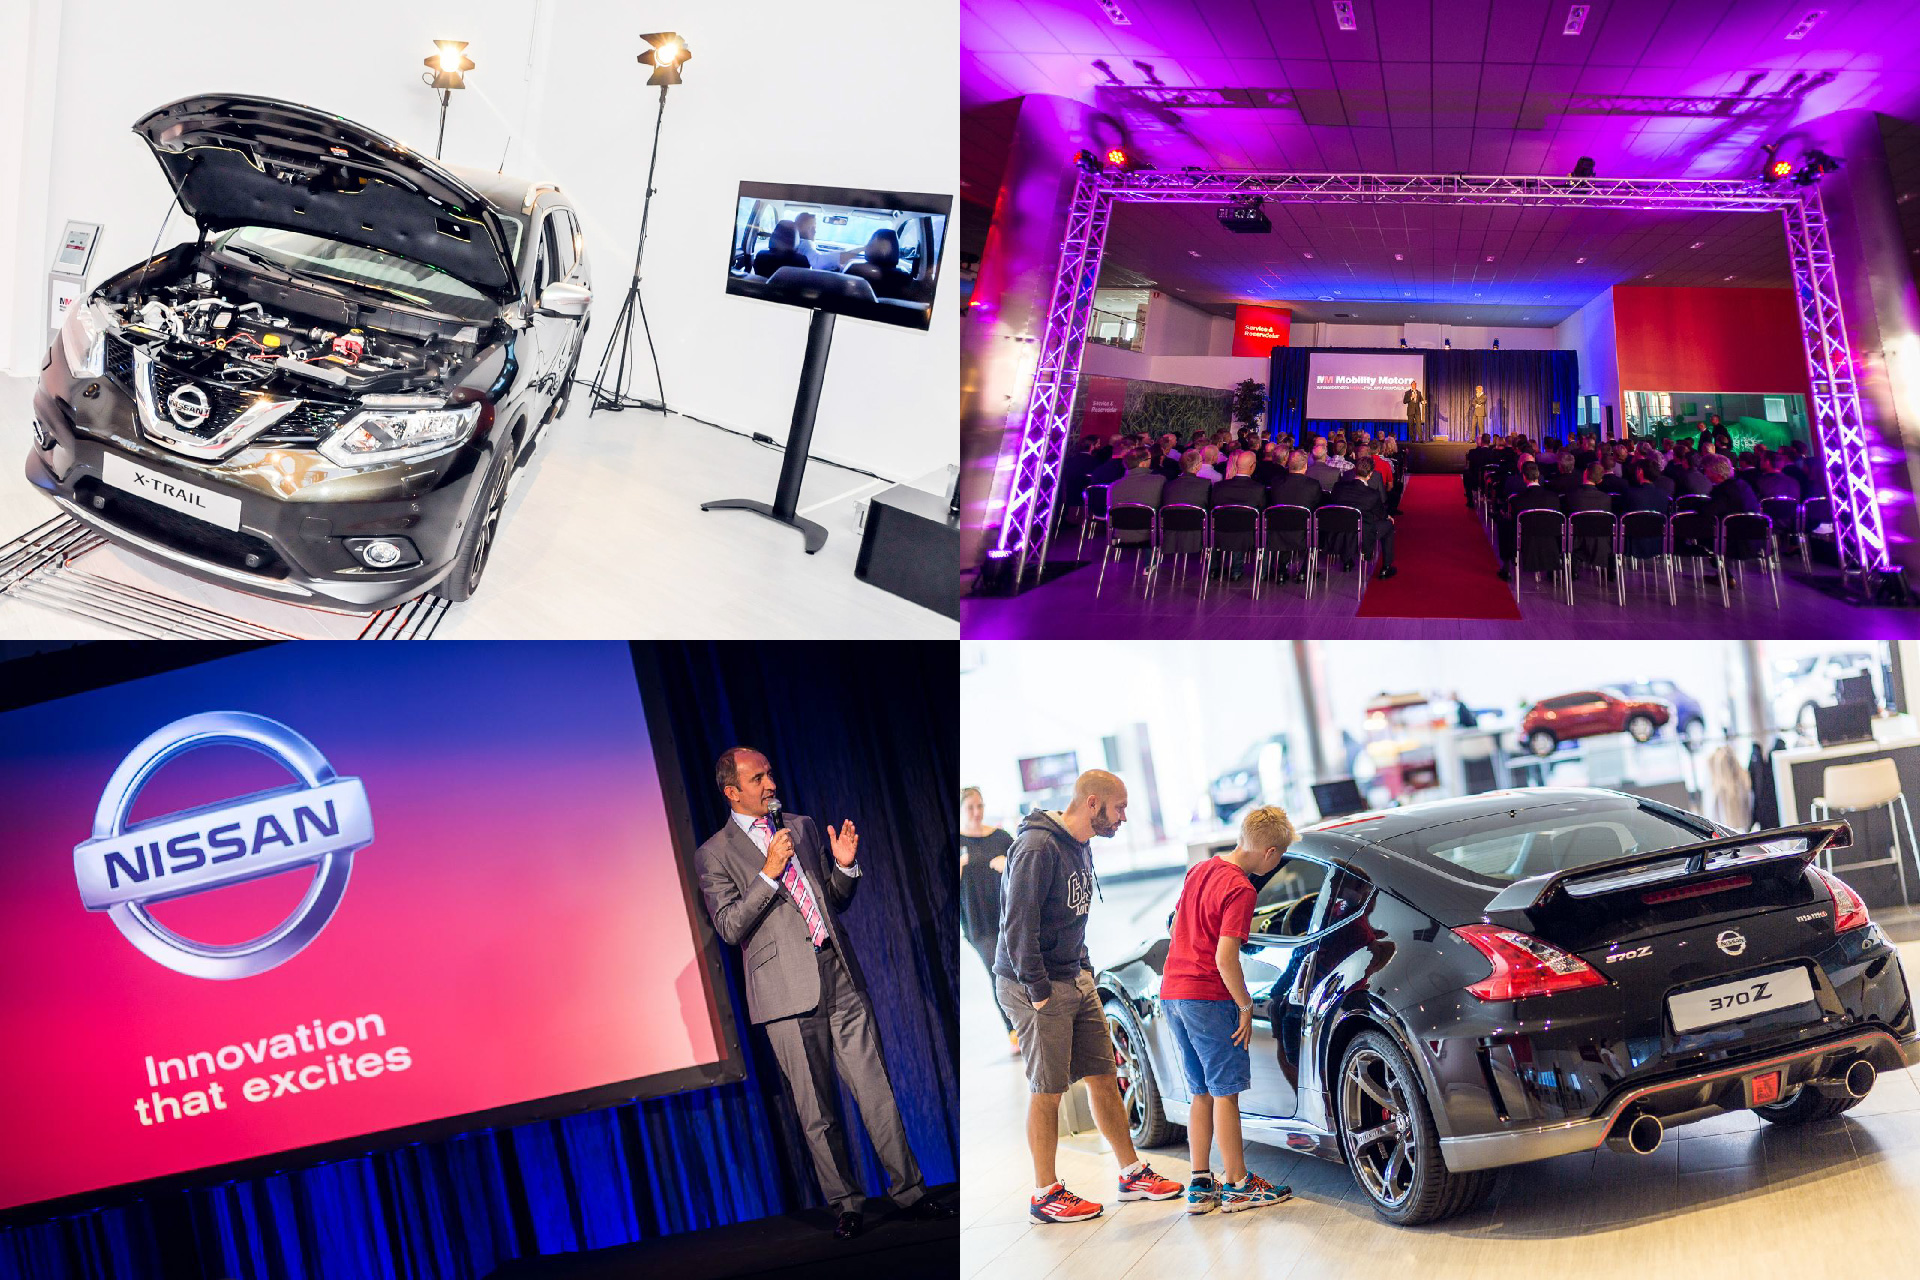 #NISSANEUROPE, Brand Experience, Expo, Displays, Conferences, Events